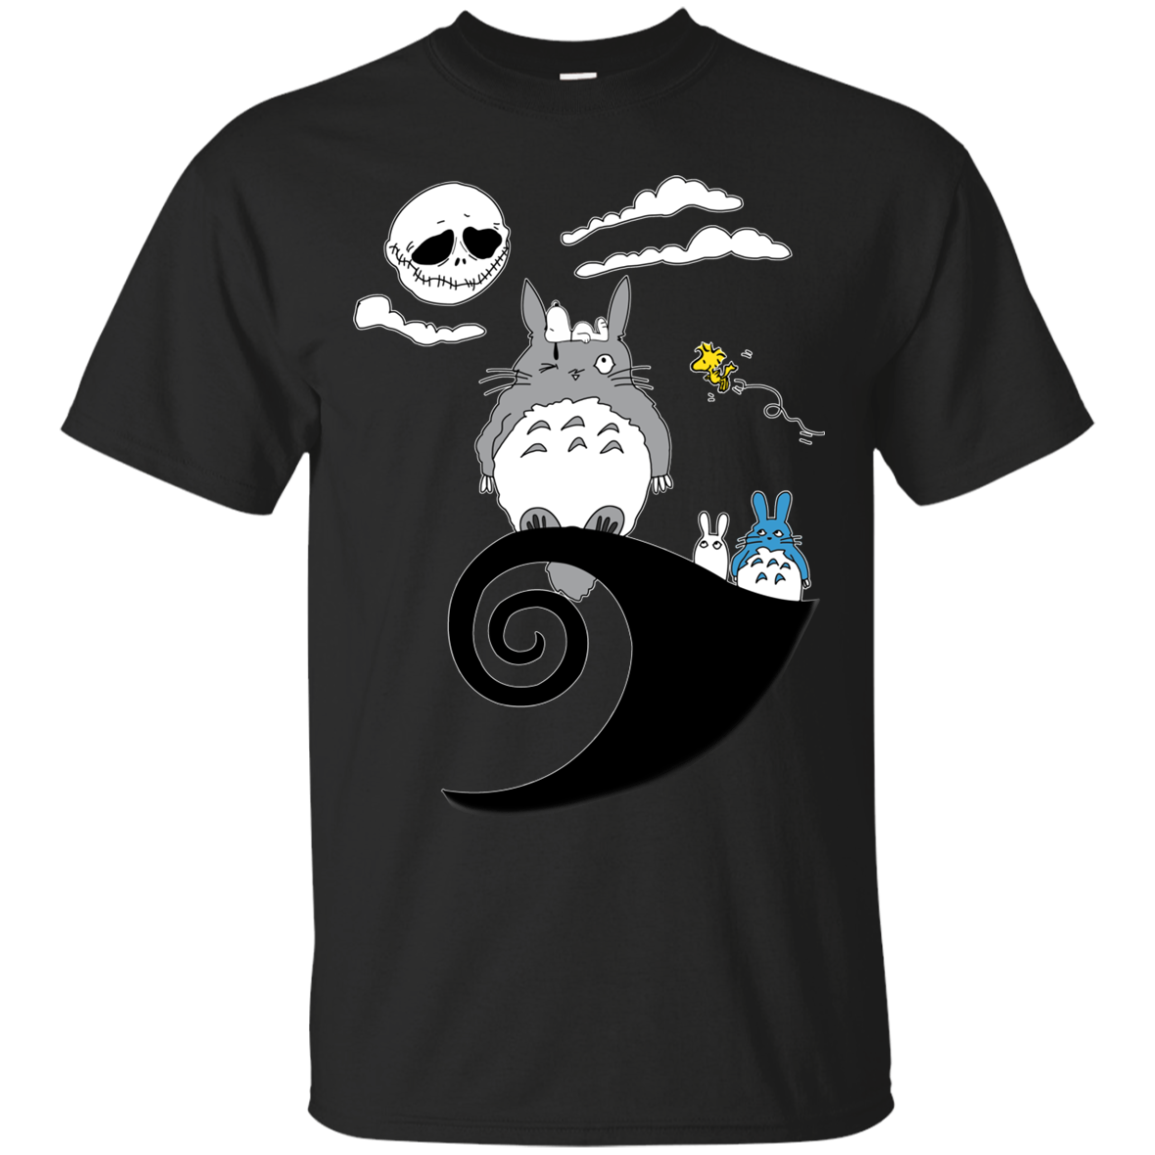 totoro snoopy nightmare before christmas t shirt